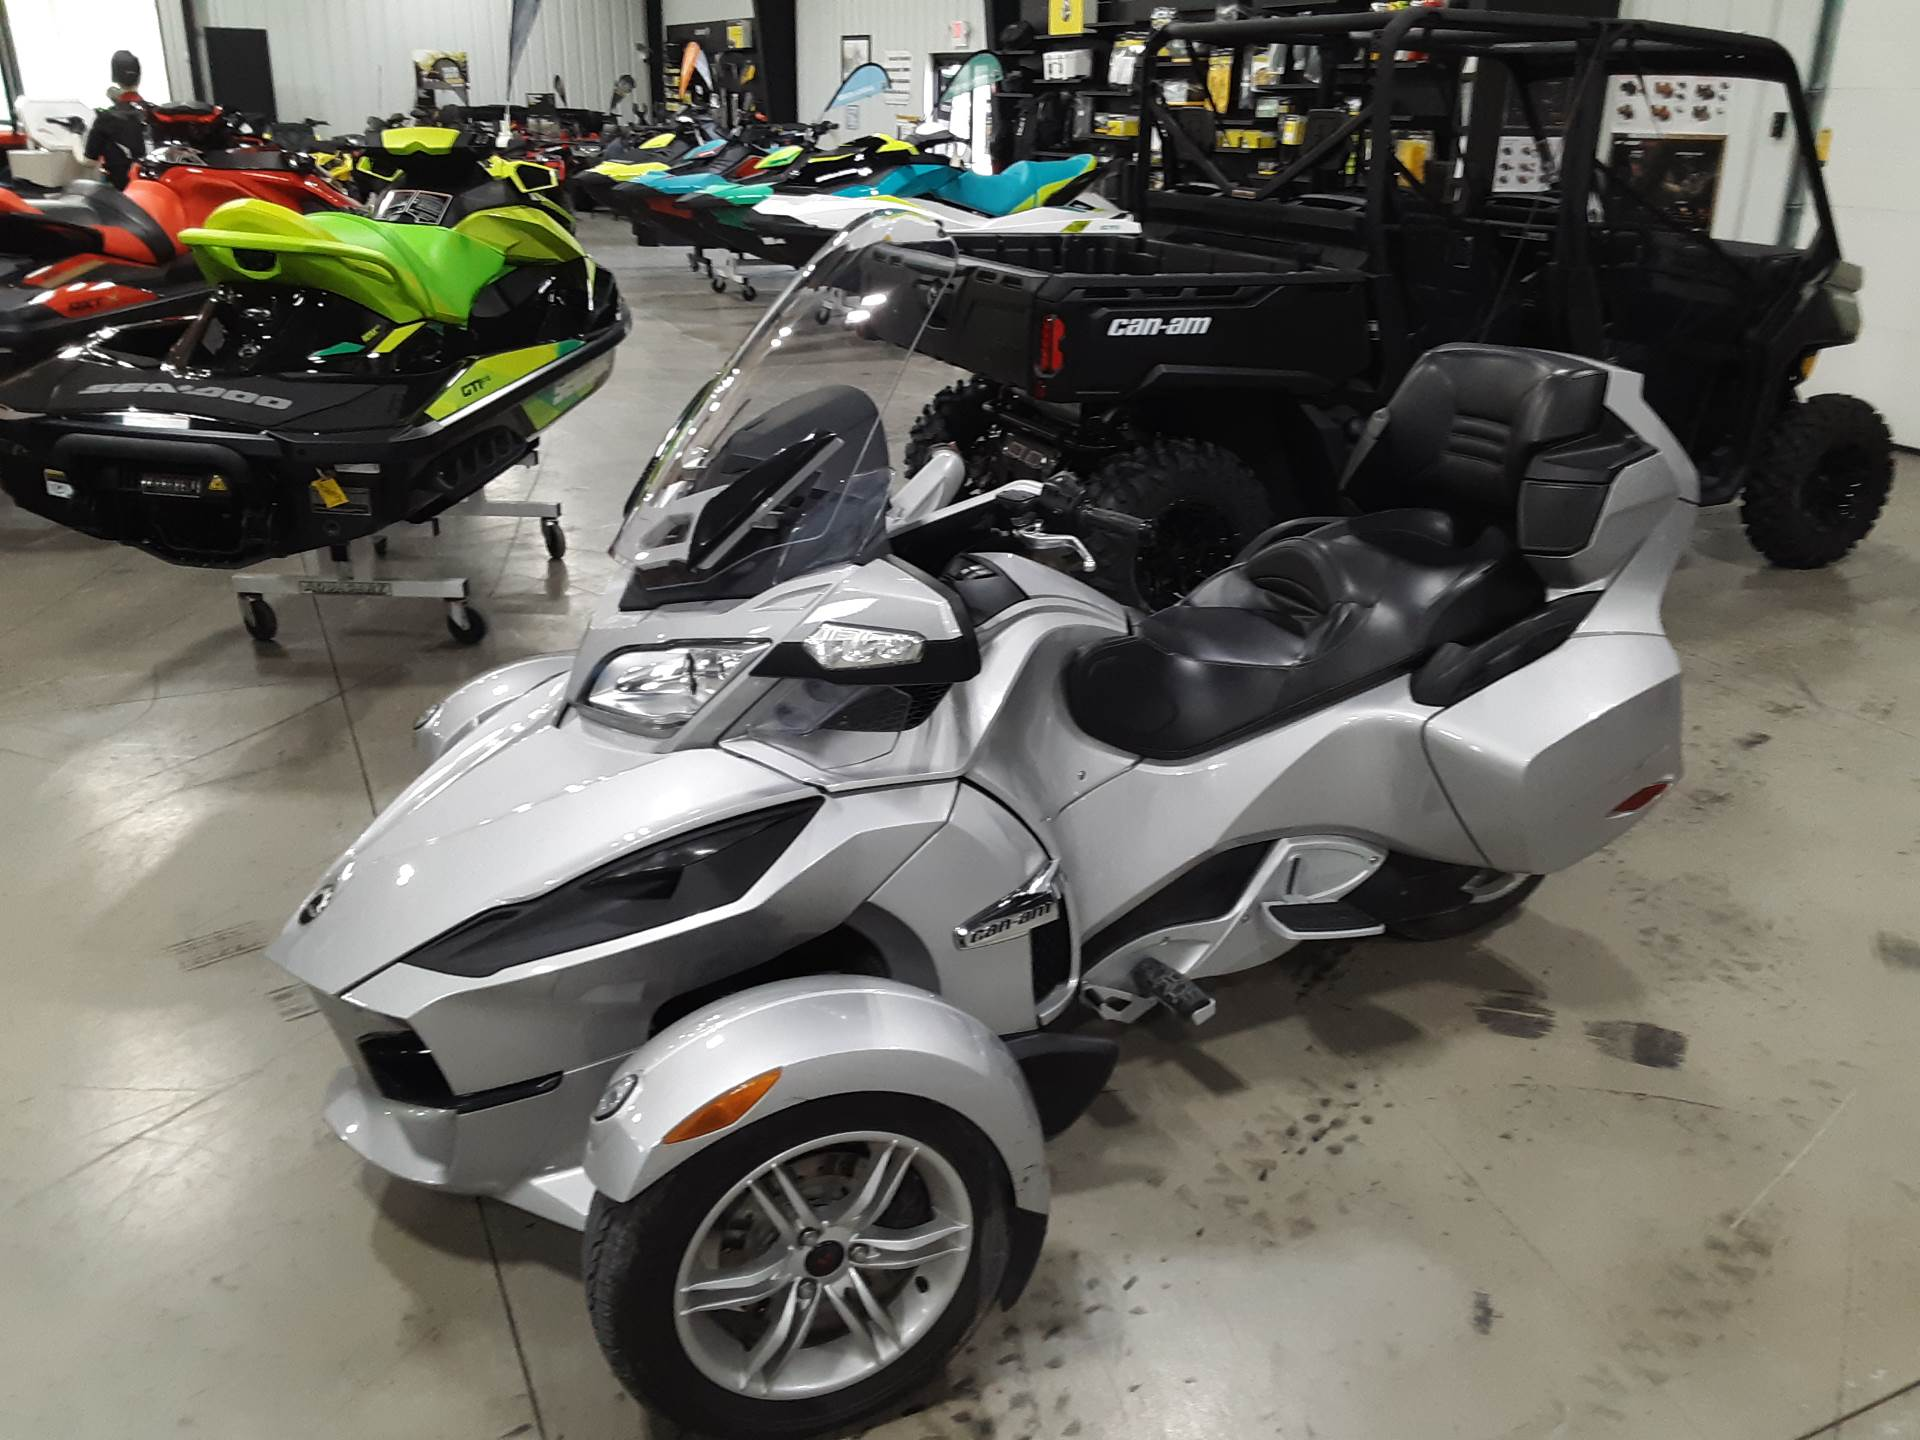 2010 Can-Am Spyder® RT Audio & Convenience SM5 in Huron, Ohio - Photo 2